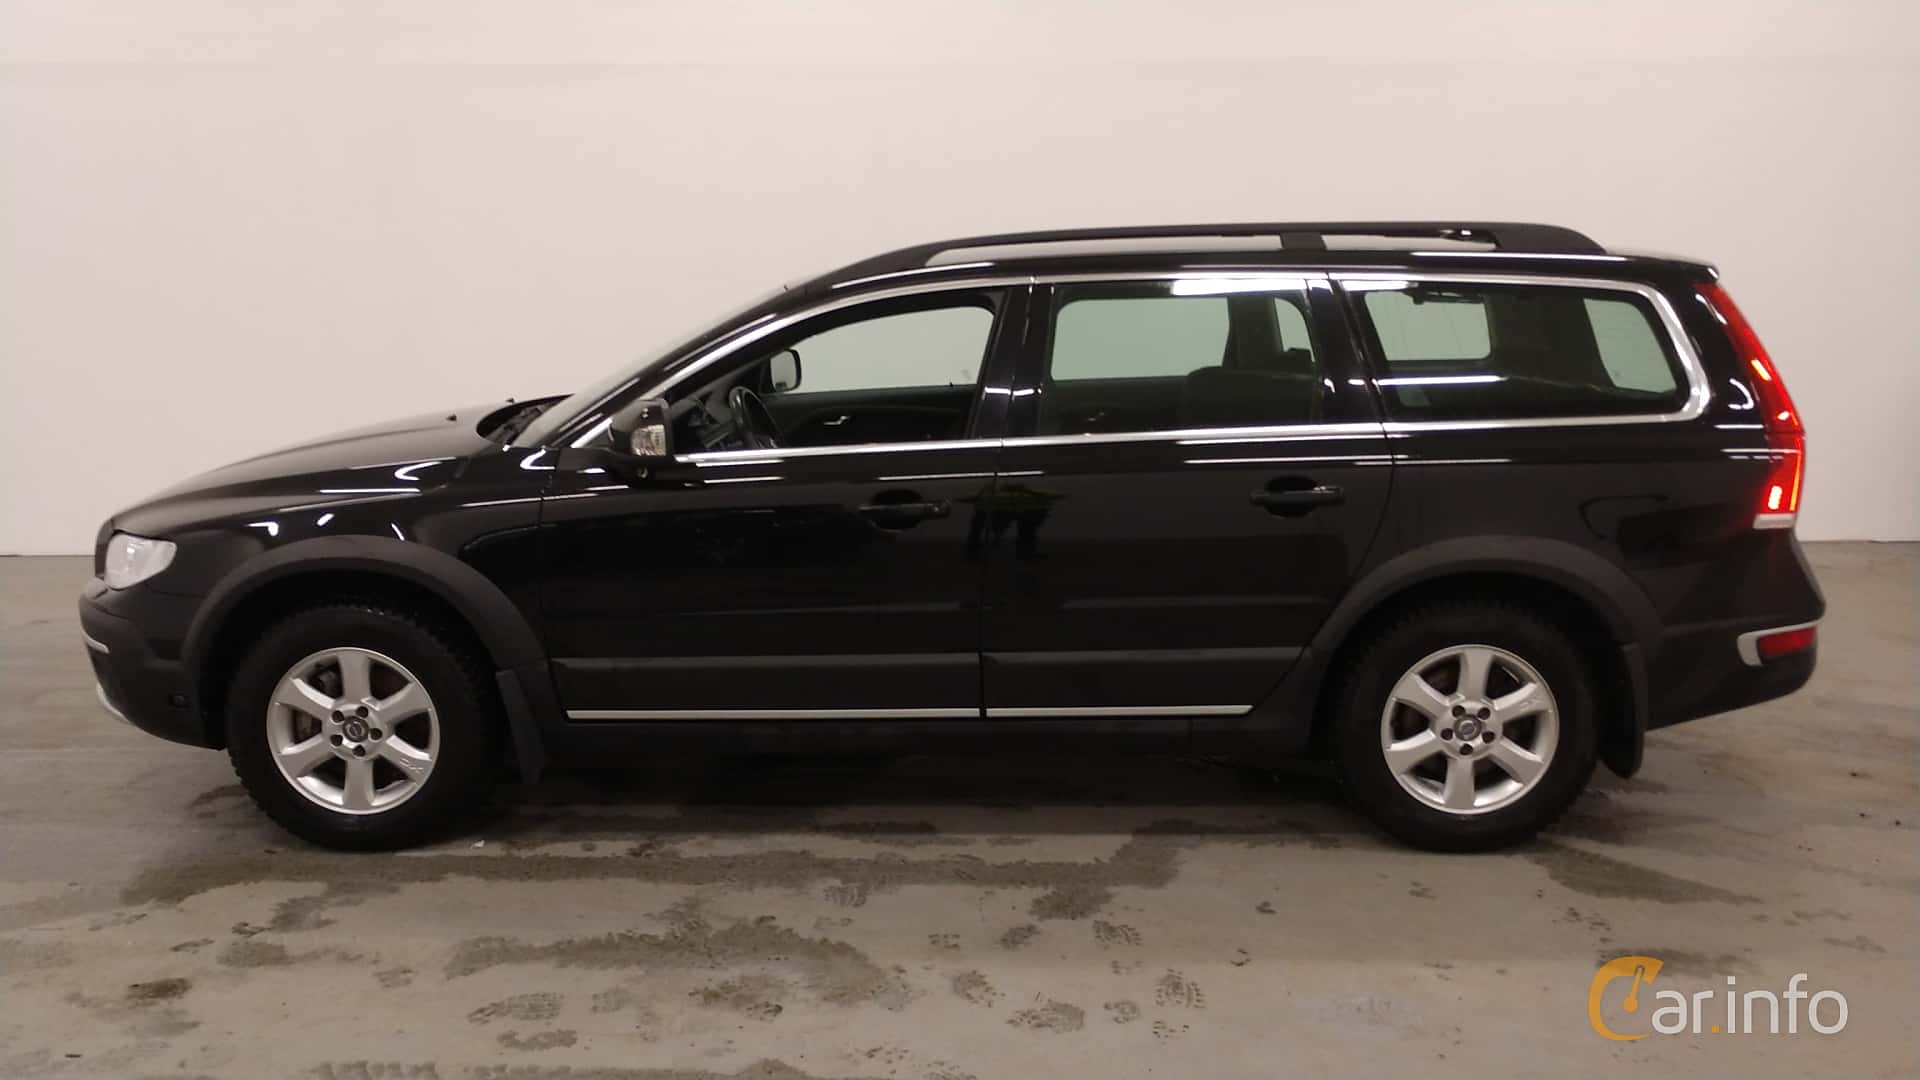 Volvo XC70 D4 AWD Geartronic, 181hp, 2015